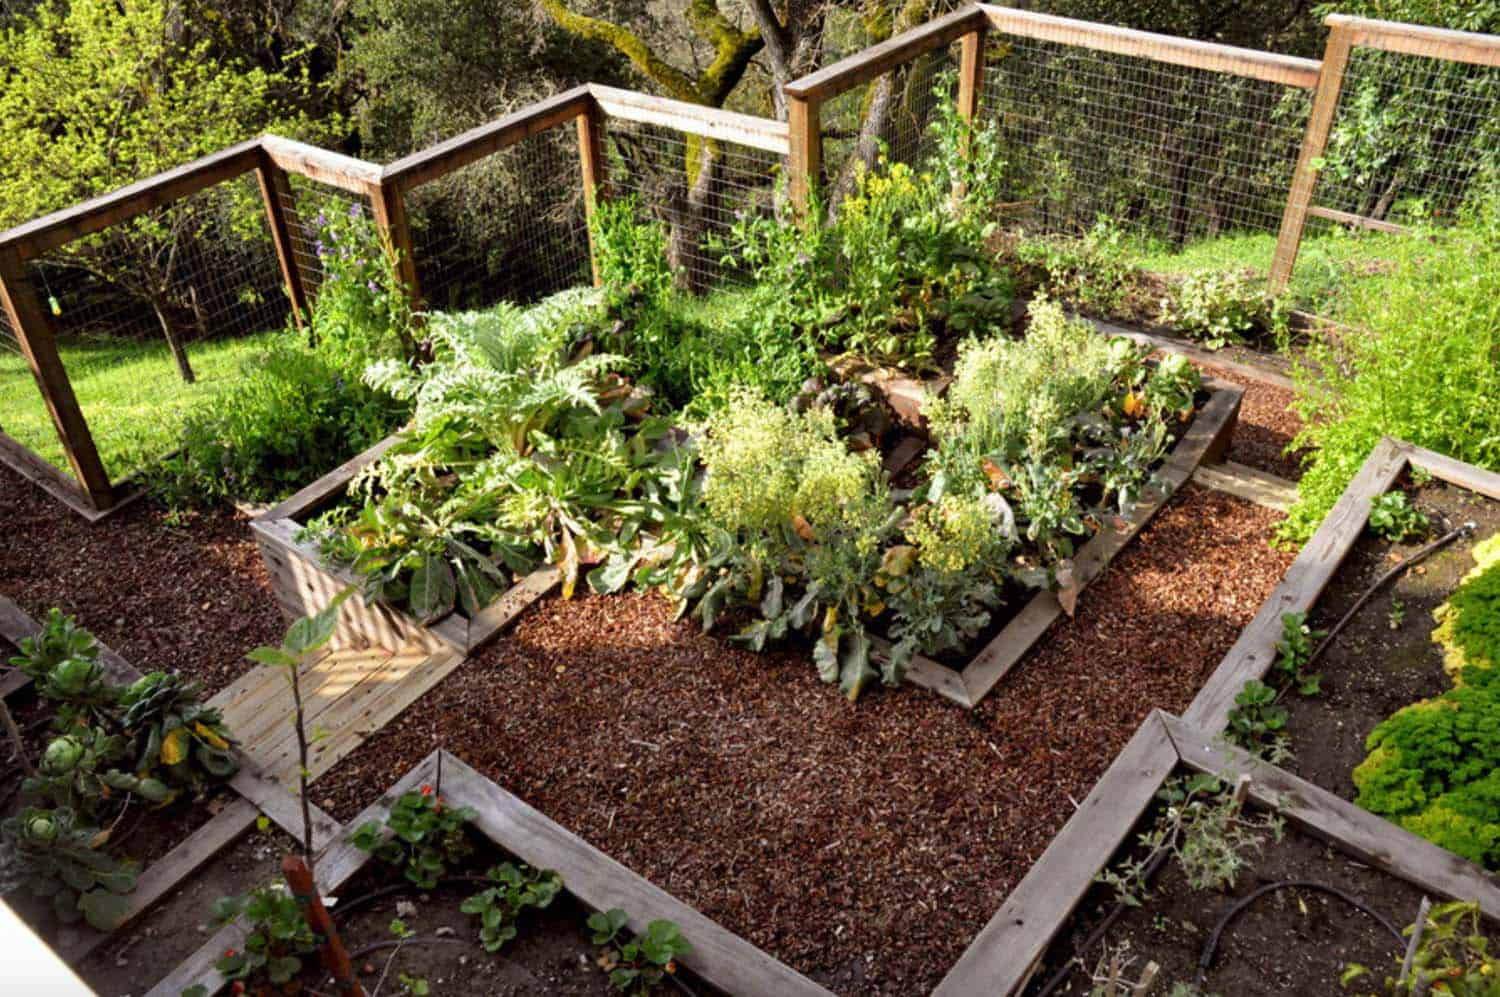 30 Amazing Ideas For Growing A Vegetable Garden In Your ... on Outdoor Vegetable Garden Ideas id=62625